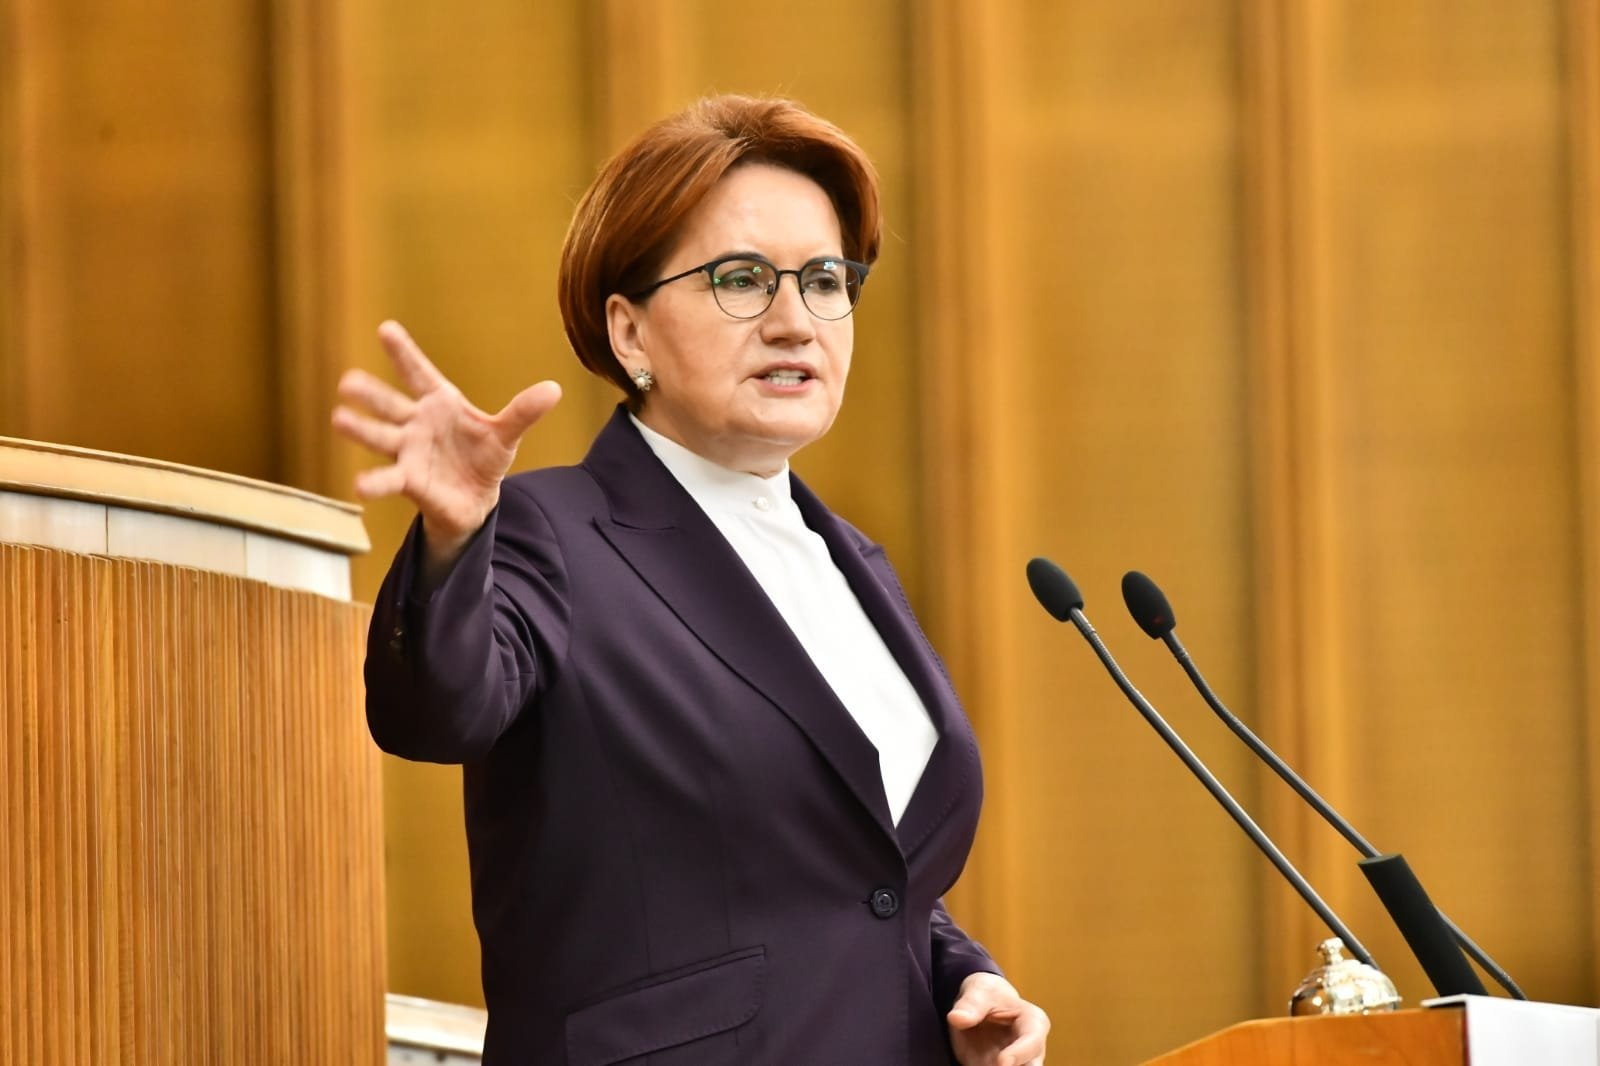 Good Party (IP) chairperson Meral Akşener speaks at the party group meeting in the Turkish Parliament, Ankara, Turkey, July 14, 2021. (DHA Photo)